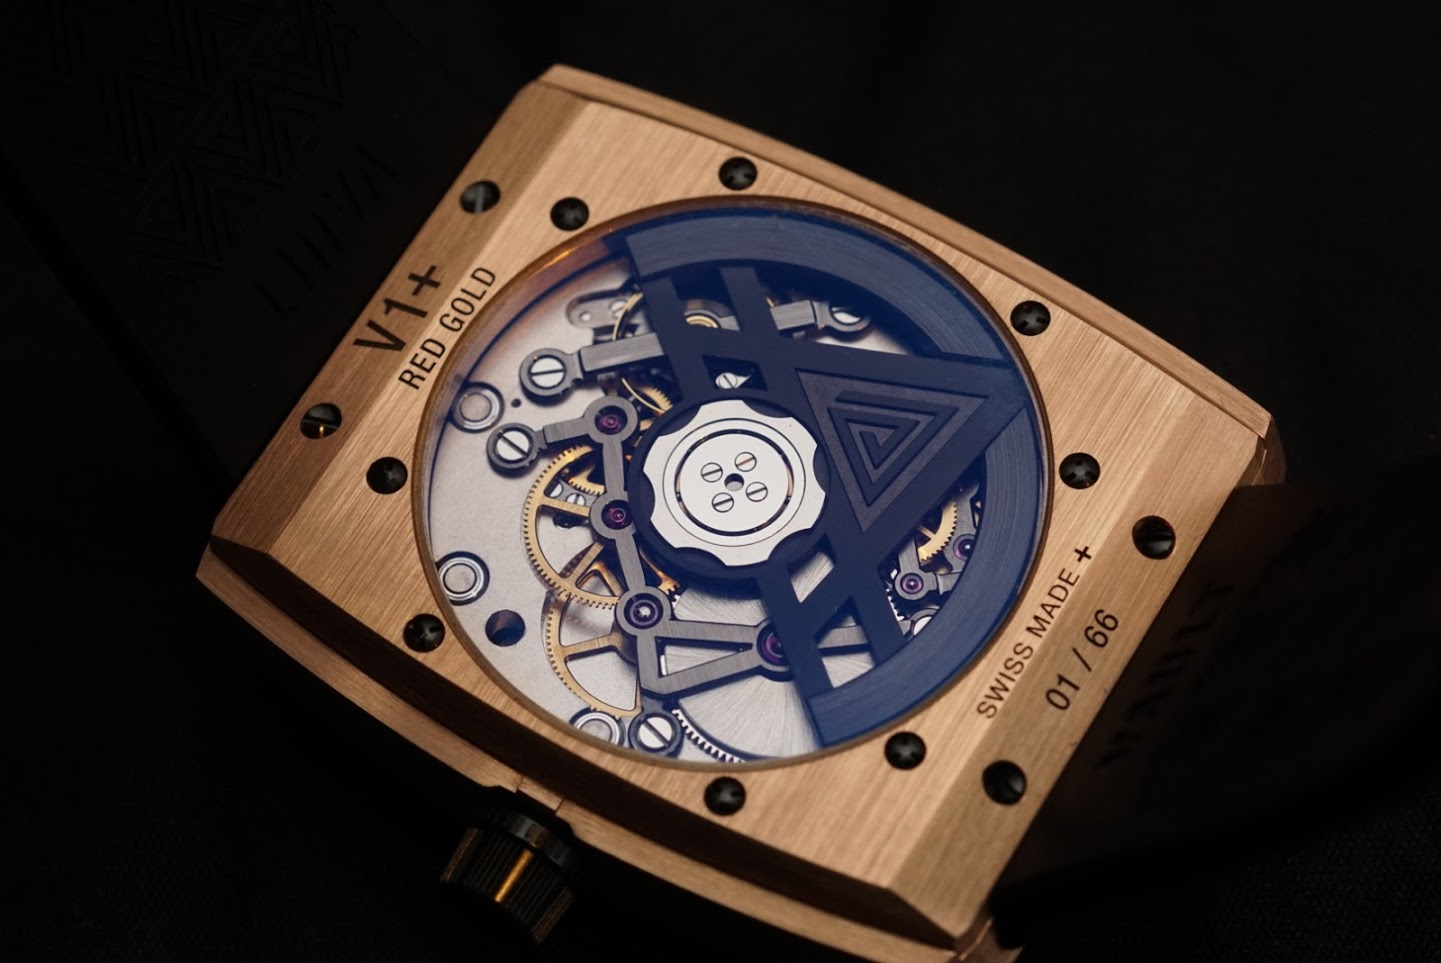 Vault V1 in-house Swiss watch movement